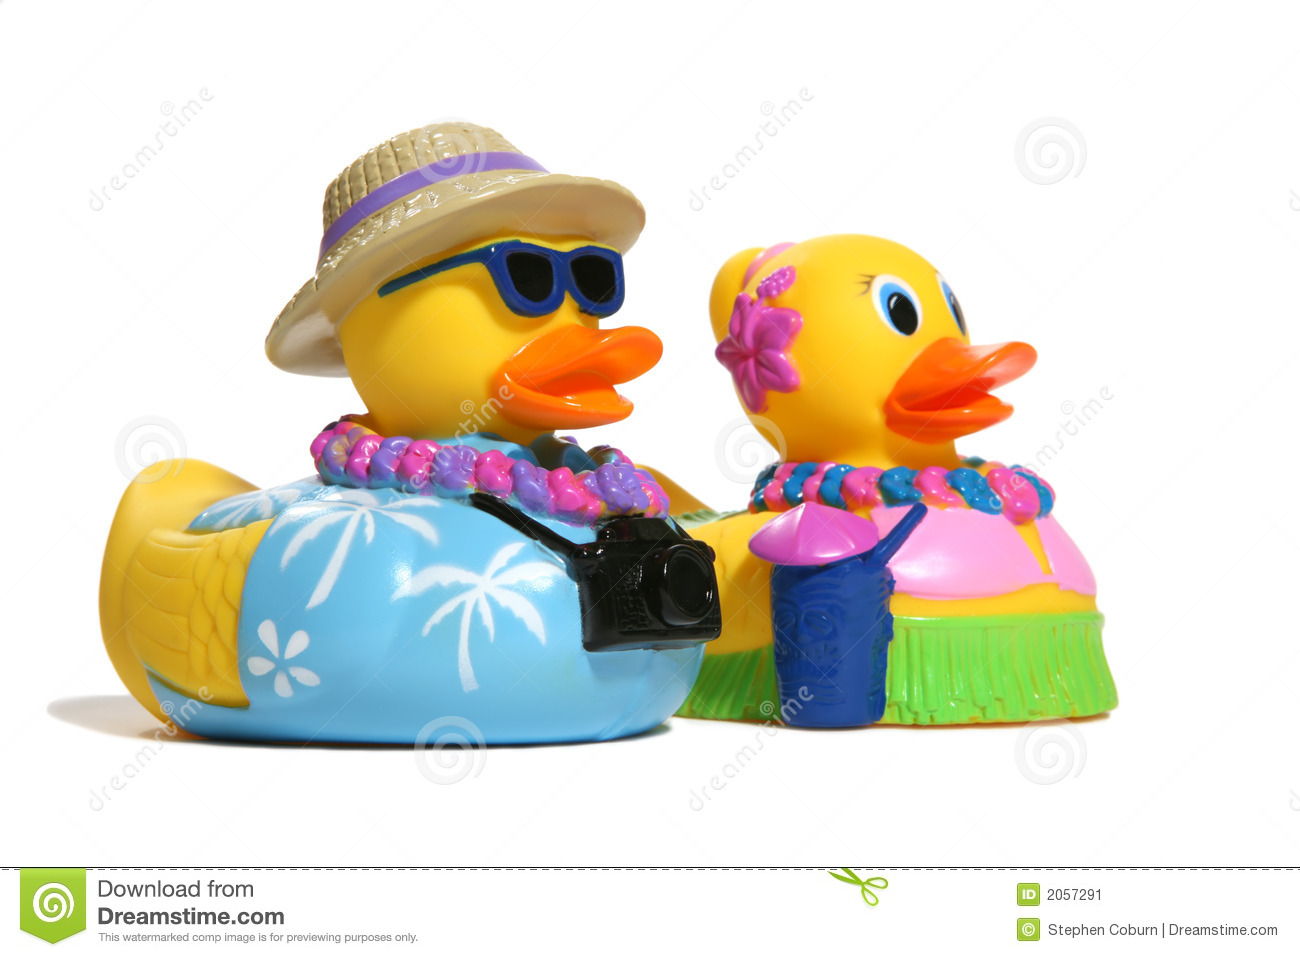 Tropical Toy Ducks